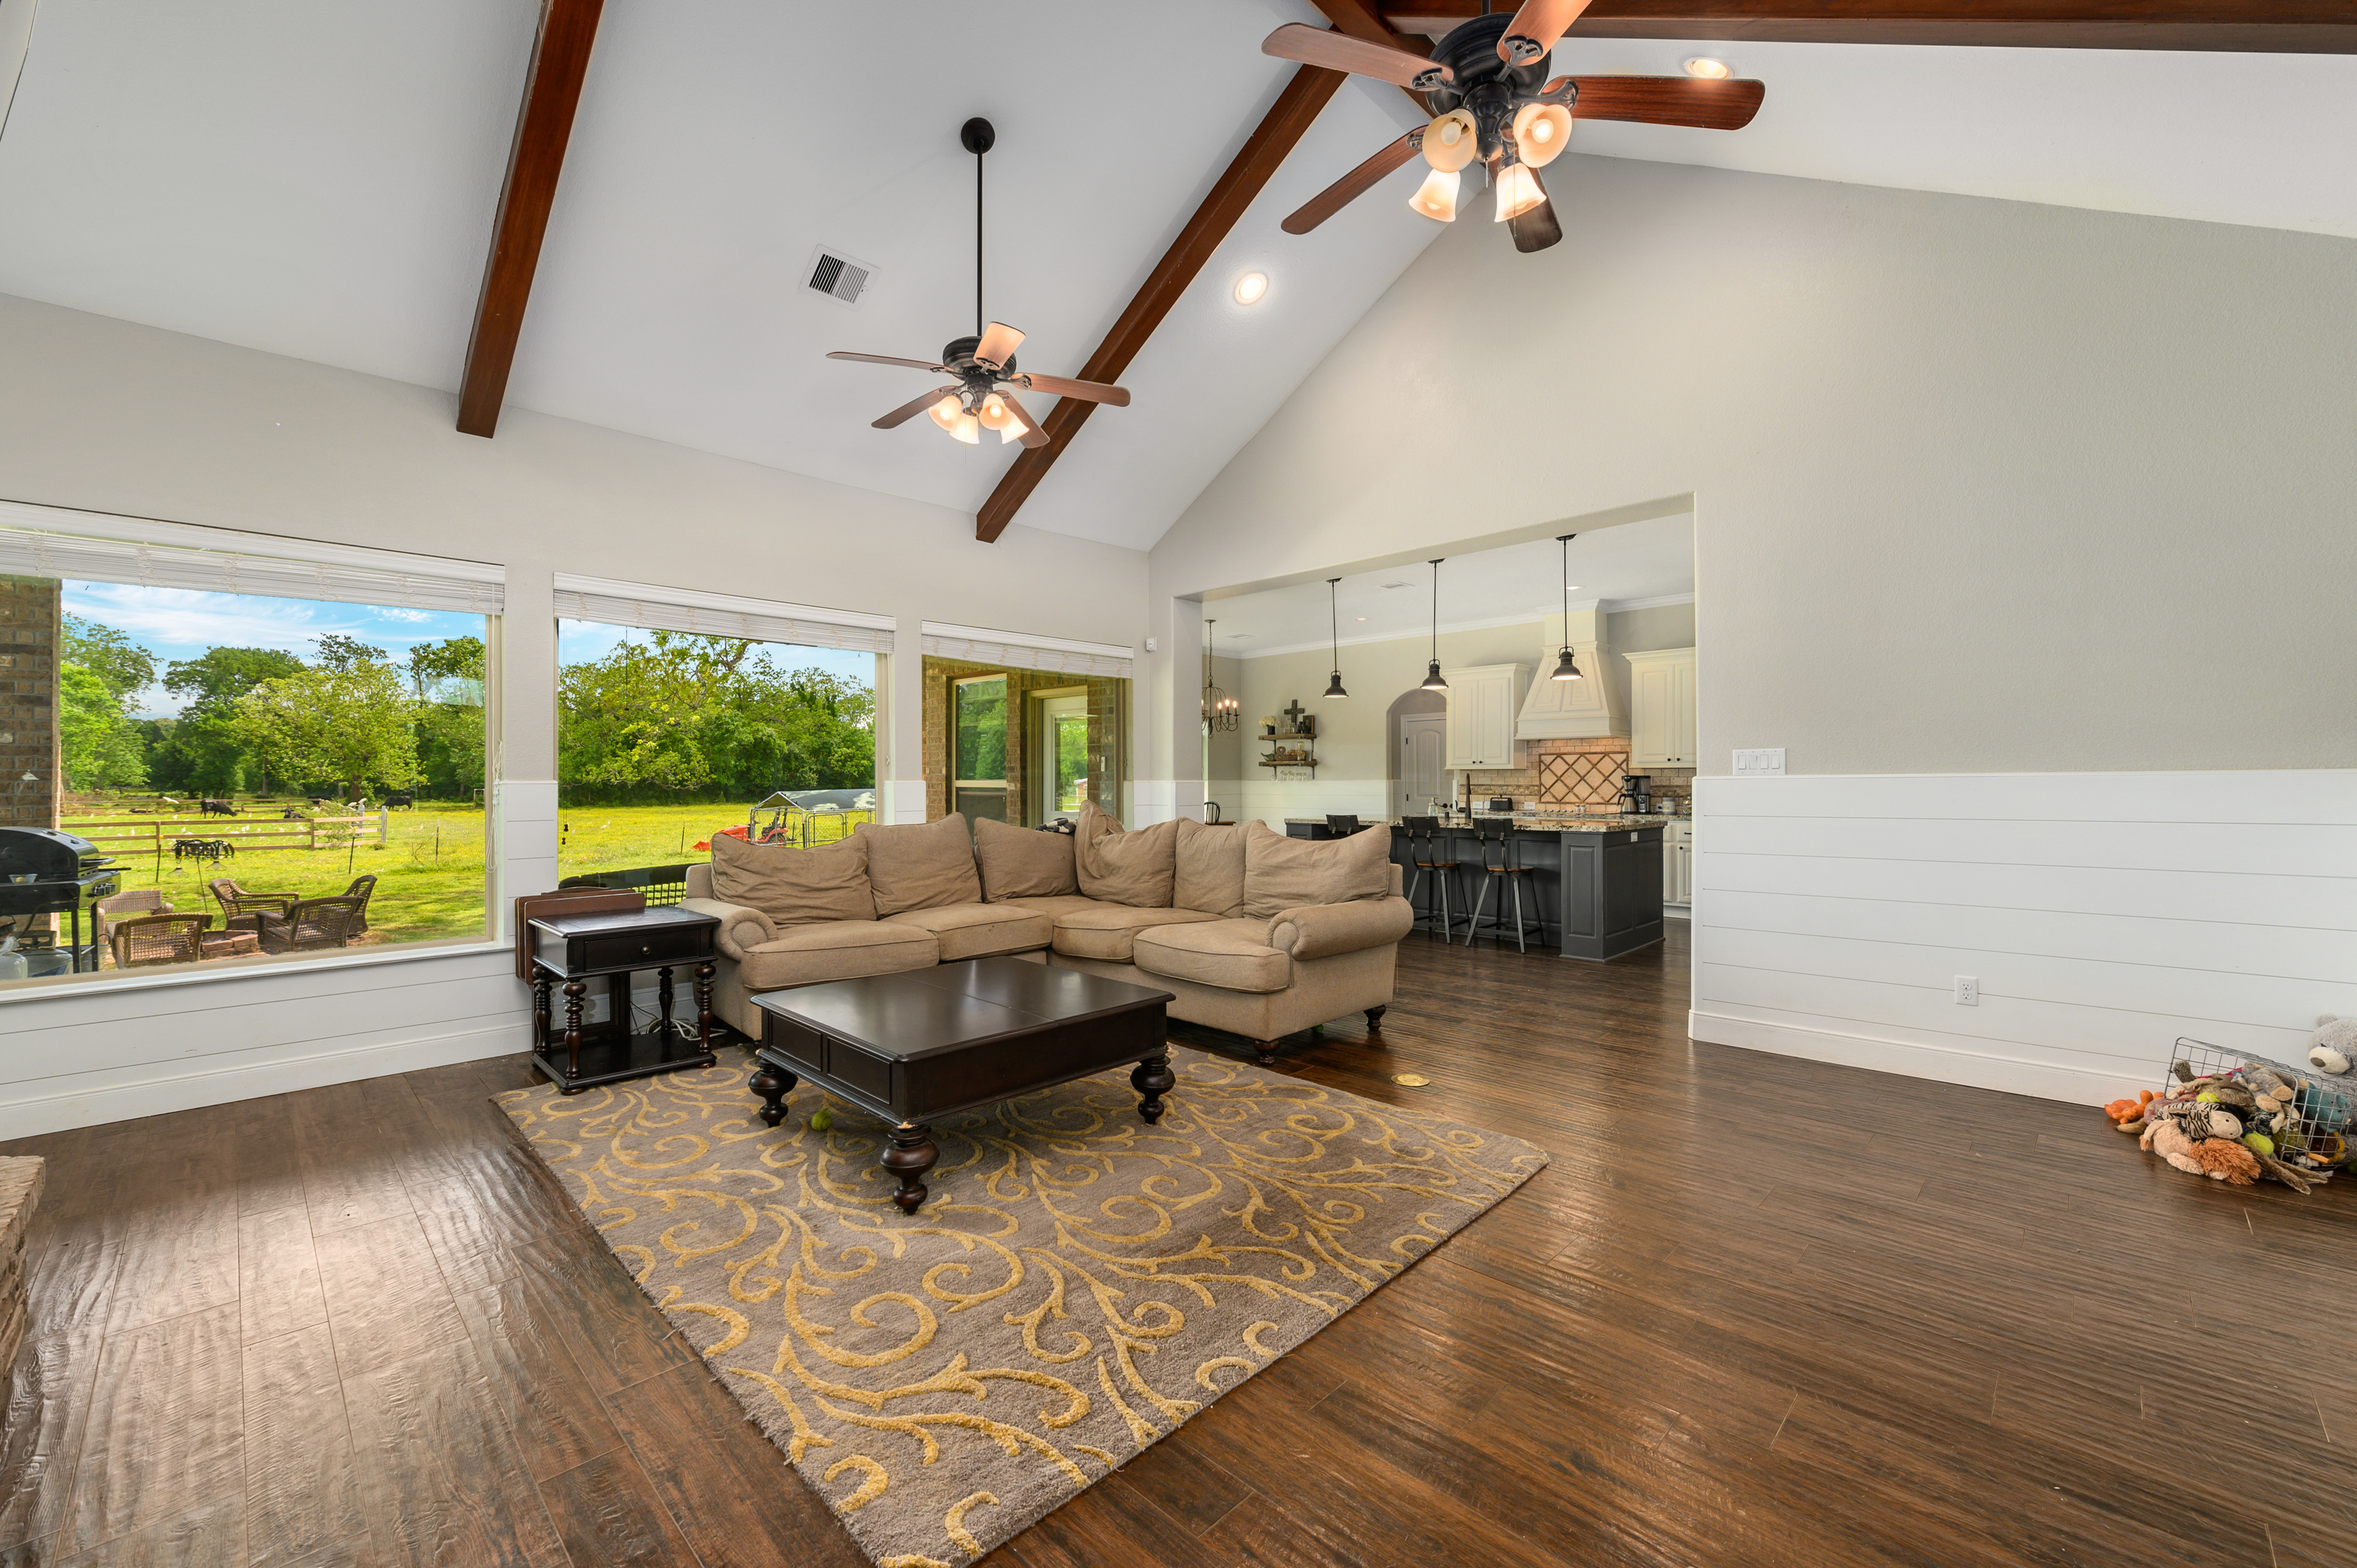 Custom Country Home with Acreage in Sealy - Image 18 of 46